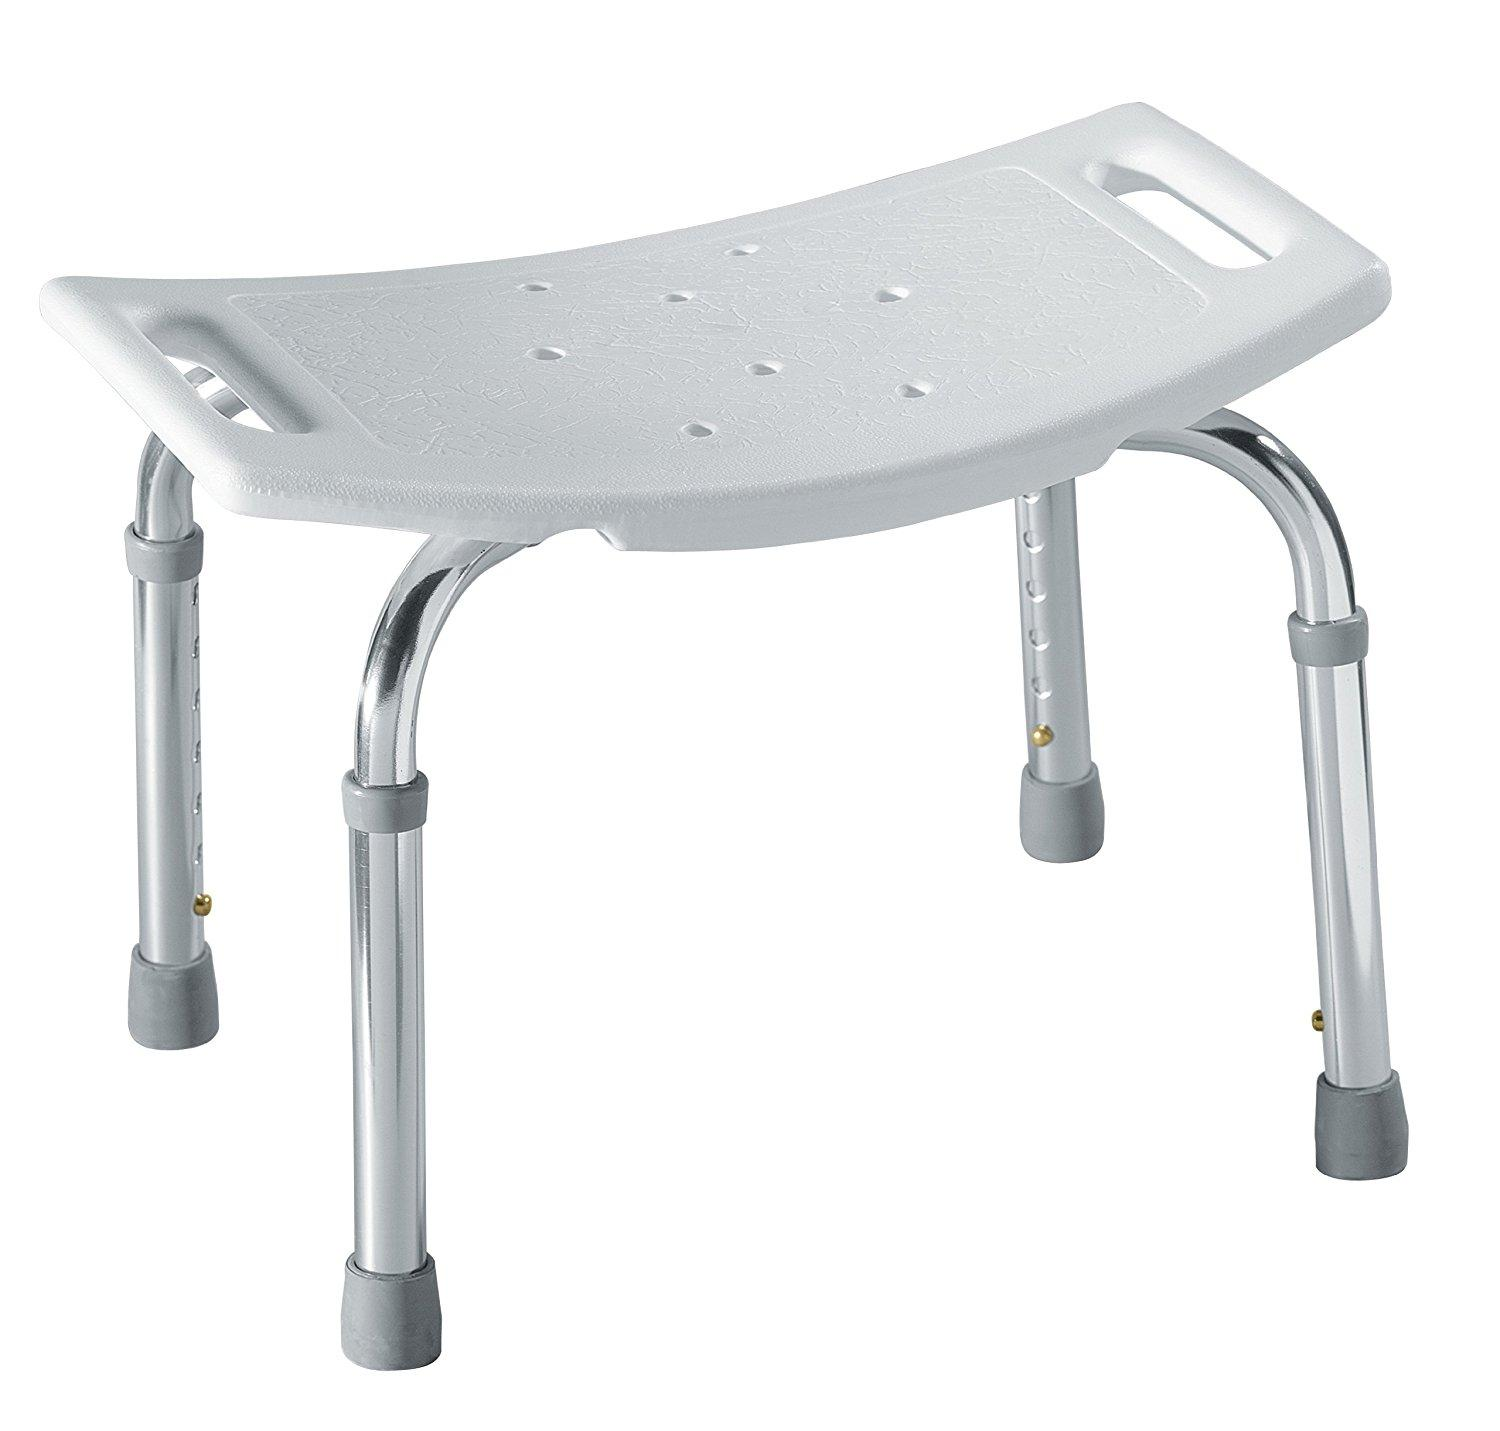 Amazon.com: Moen DN7025 Adjustable Tub and Shower Seat, White: Home ...